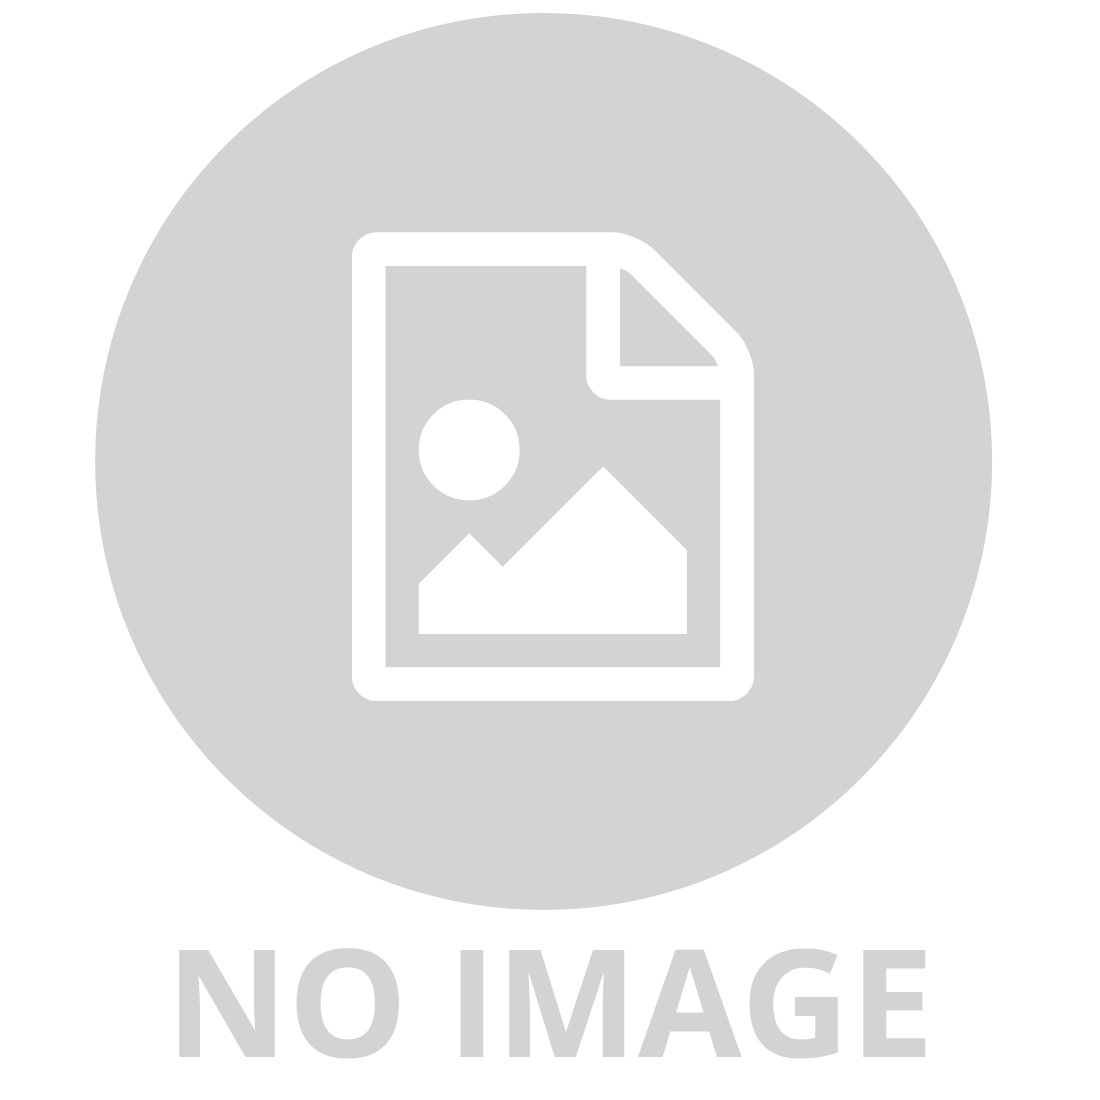 LEGO FRIENDS 41662 OLIVIA'S FLAMINGO CUBE